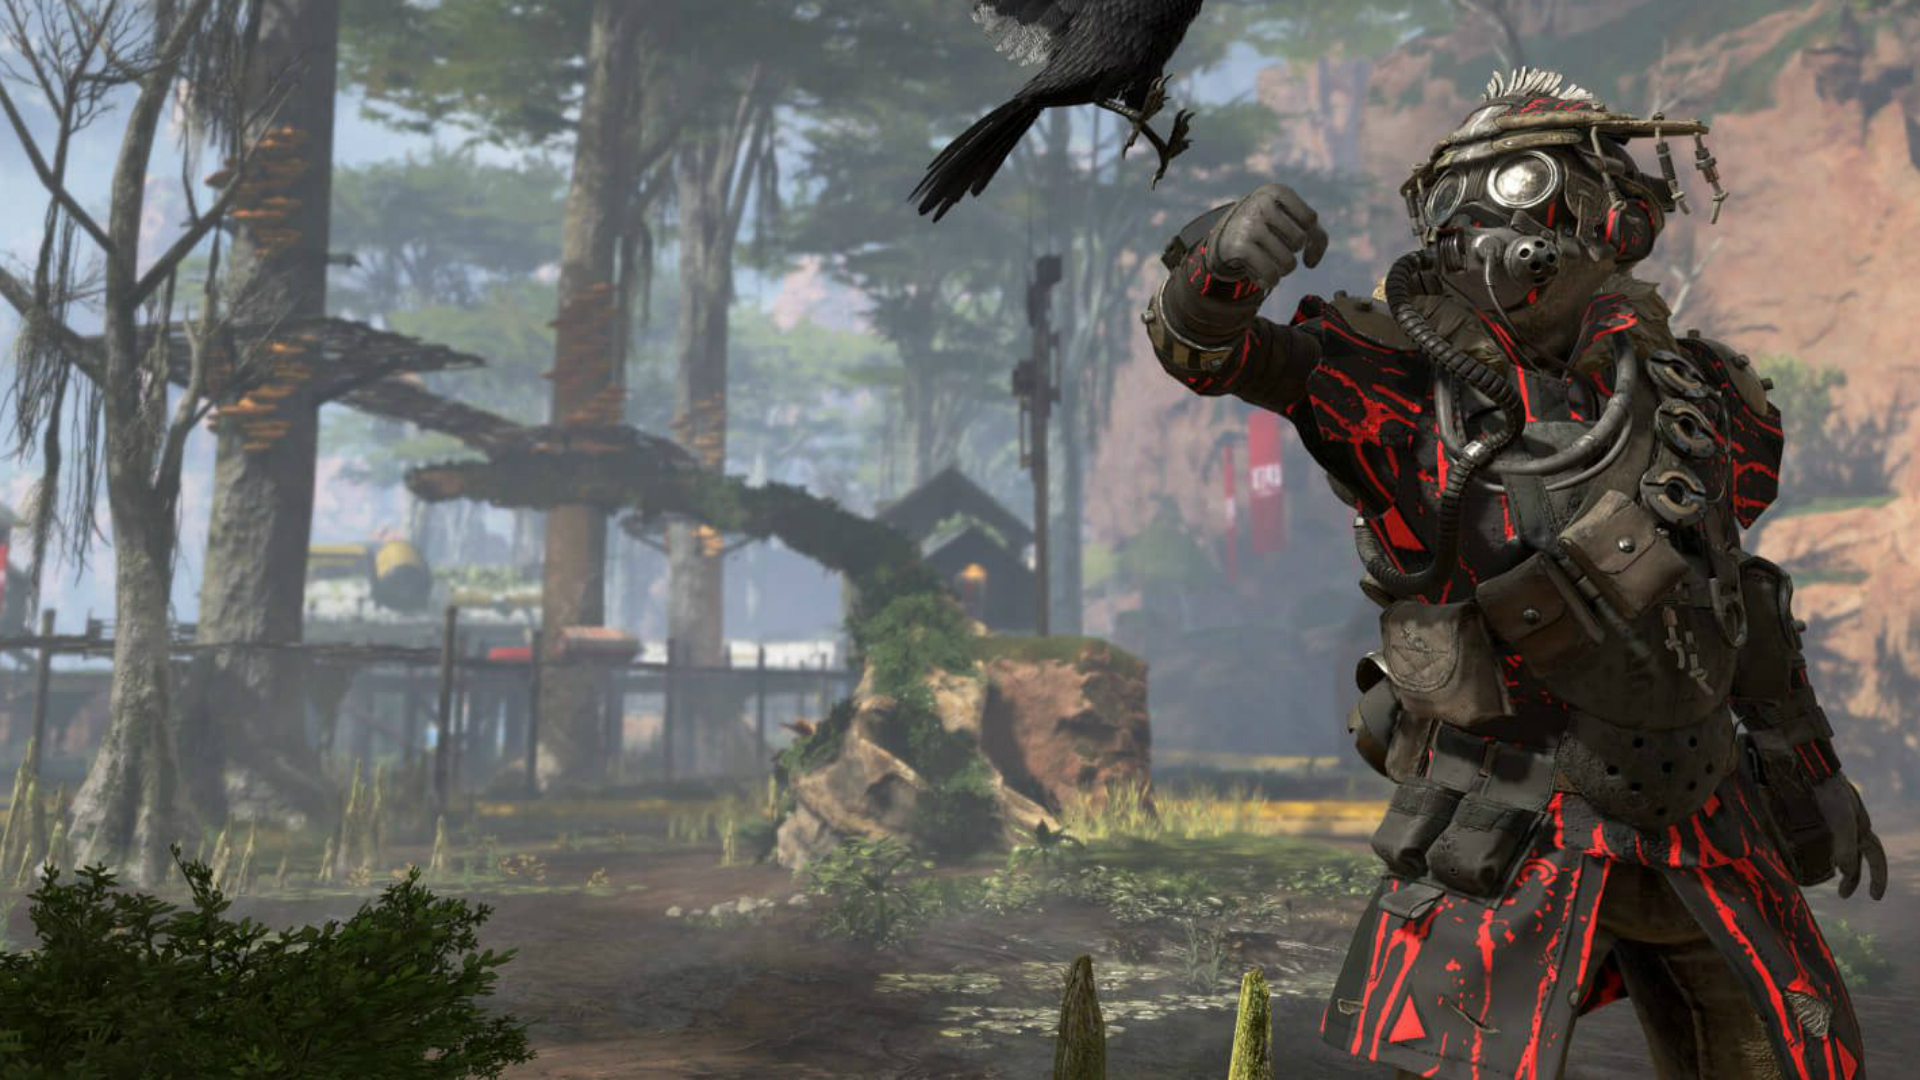 You Can Now Send Voice Messages In Apex Legends Without A Mic Dot Esports